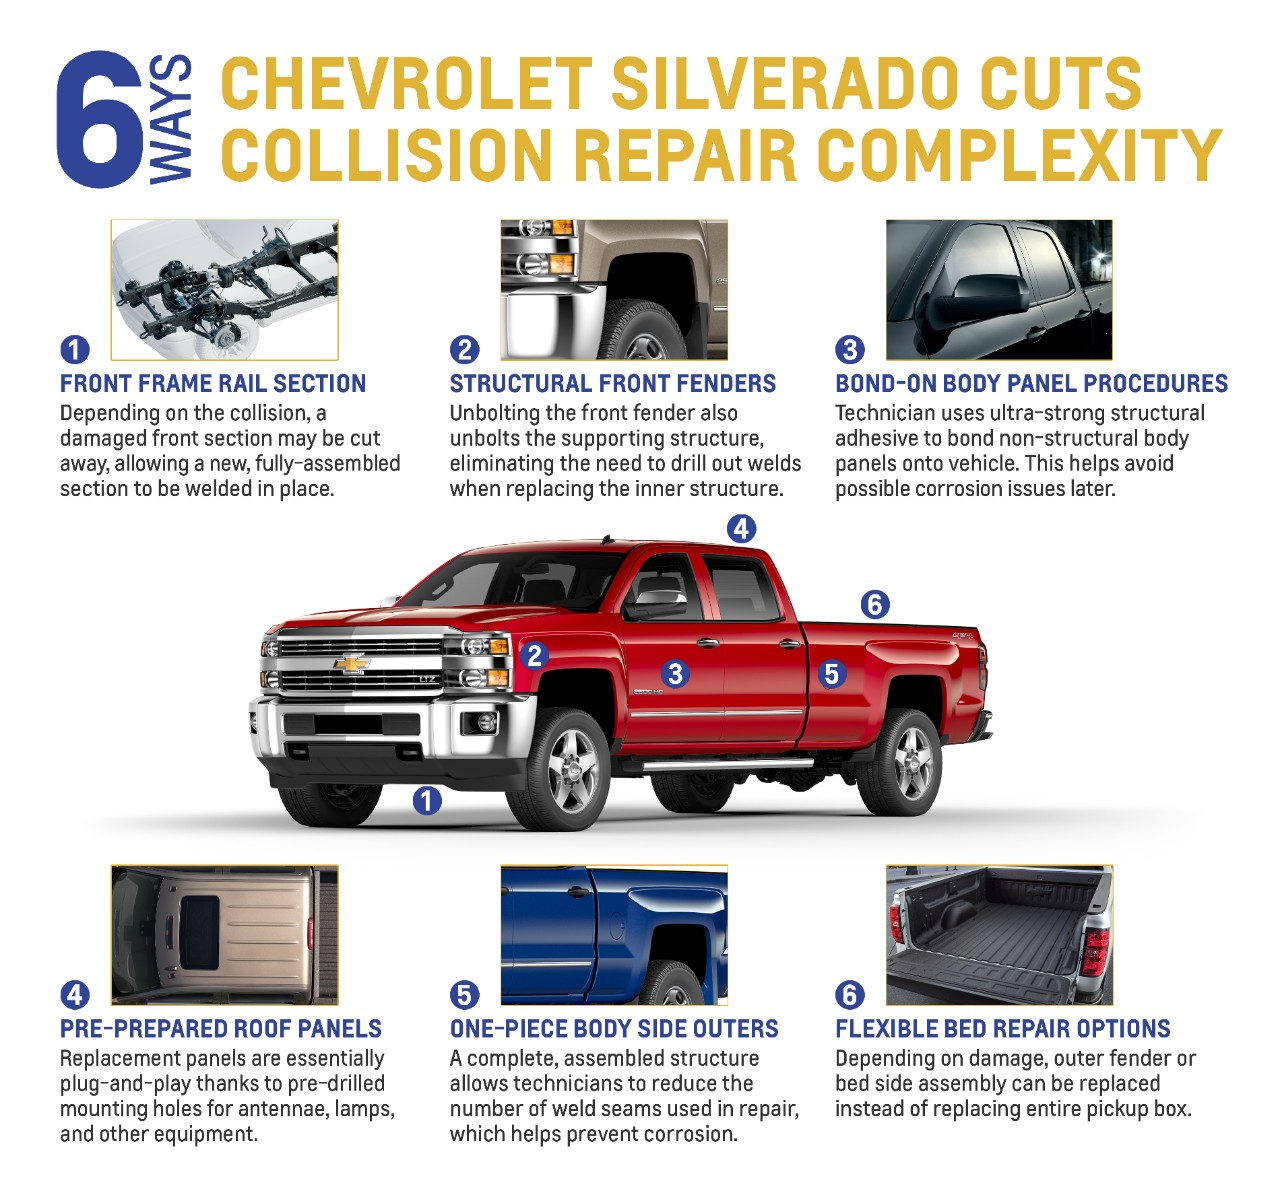 2015 Chevy Silverado cuts collision repair complexity